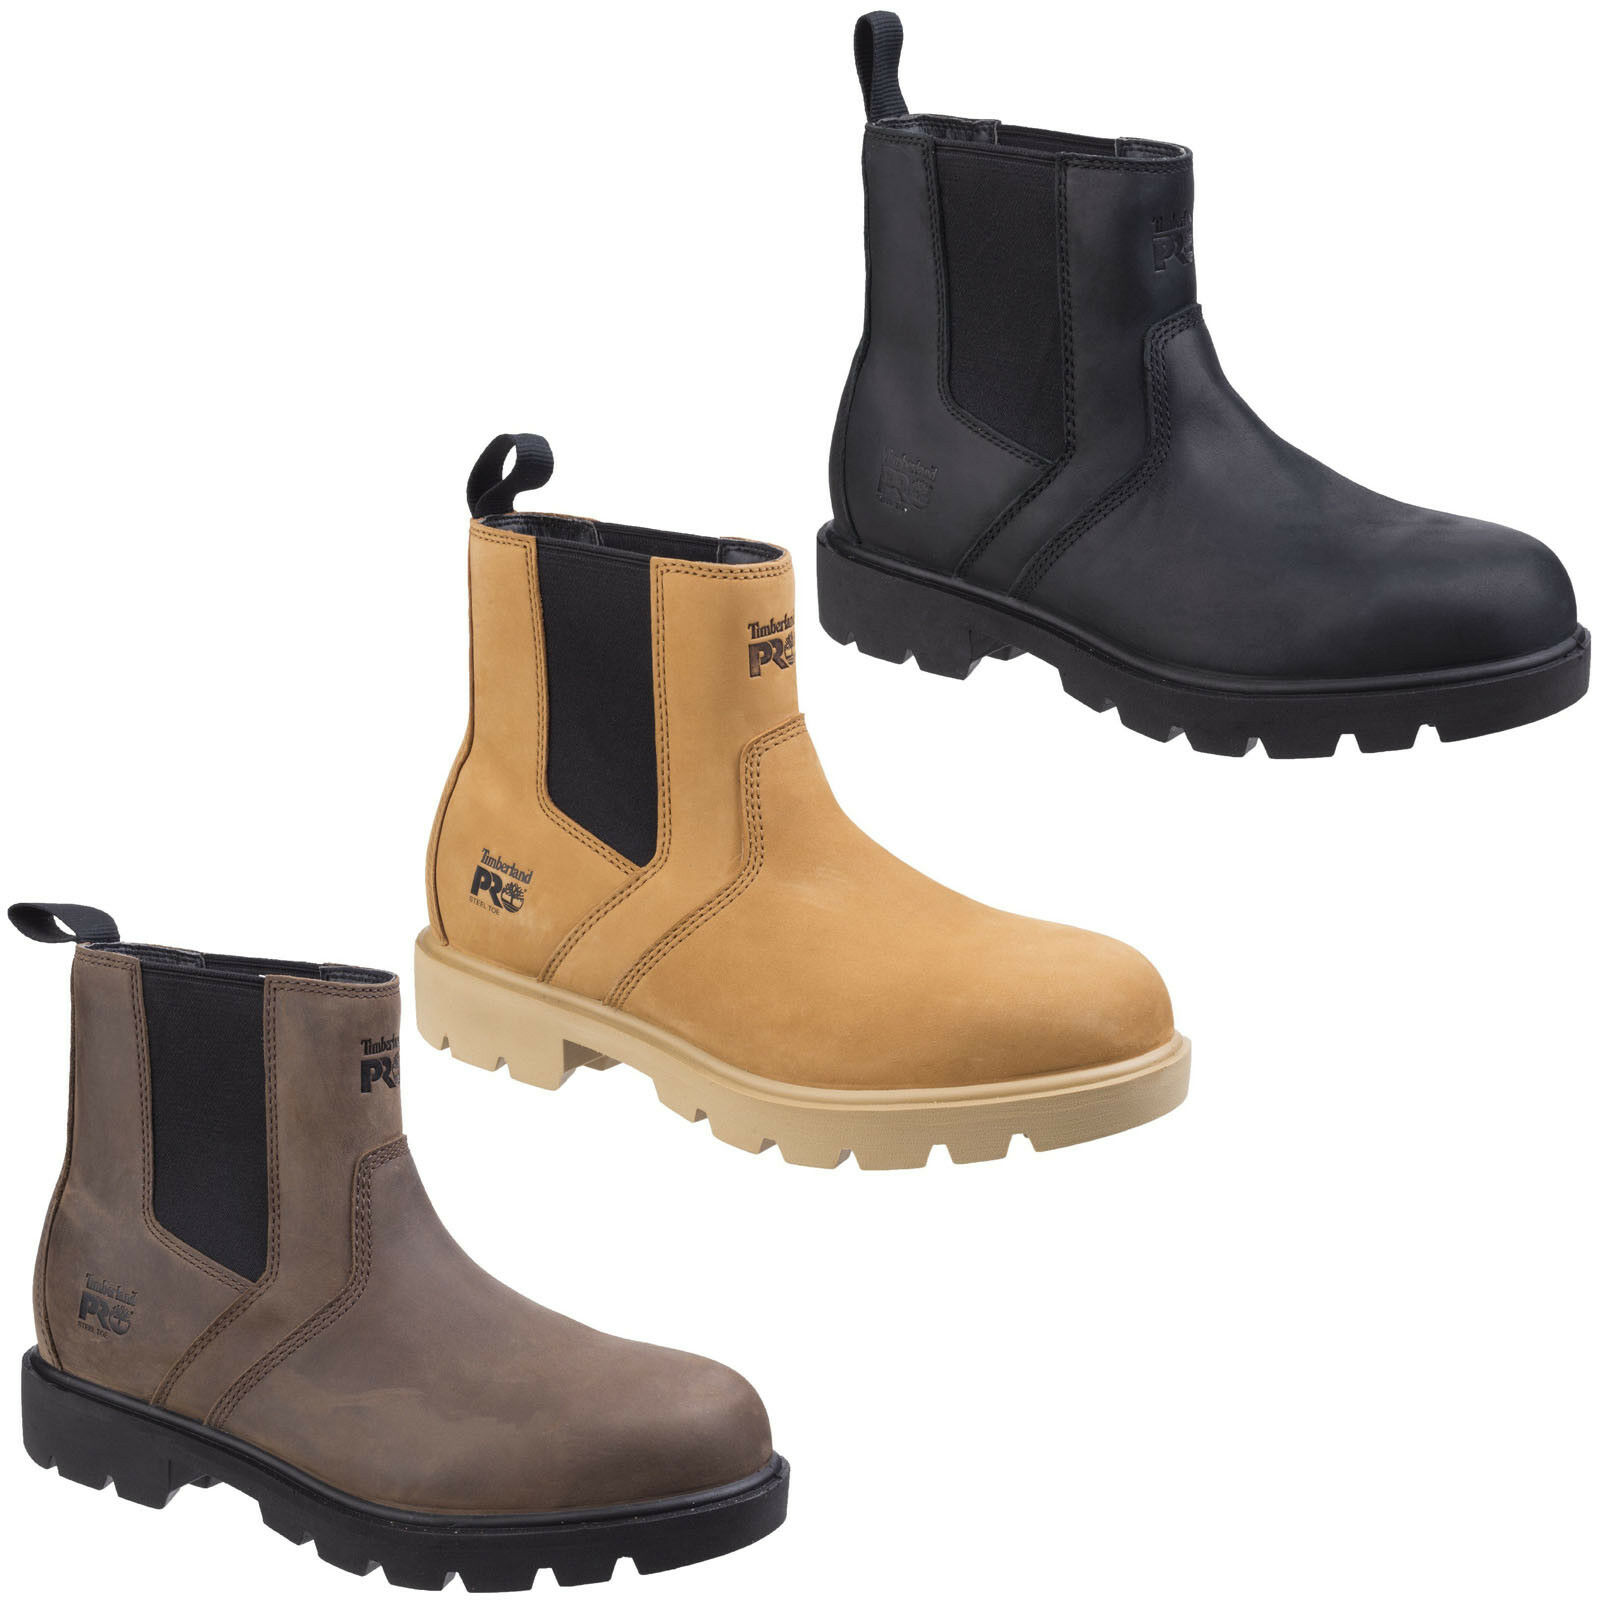 Details about Timberland Pro Sawhorse Dealer Safety Boots Mens Water  Resistant Steel Toe Cap 2c5184632